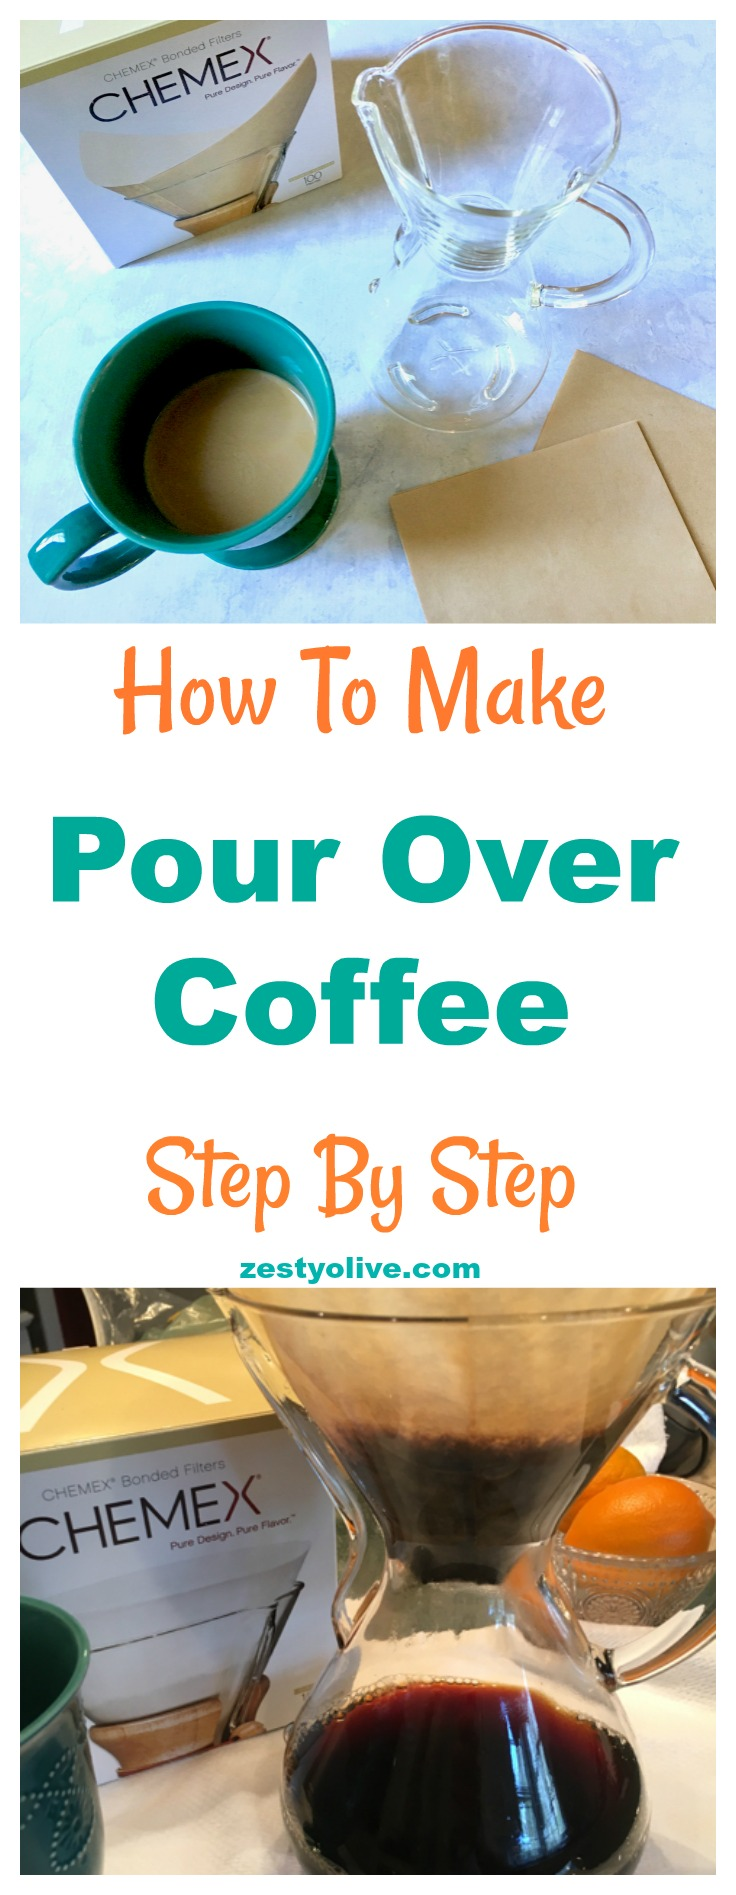 How To Make Pour Over Coffee Step By Step Guide